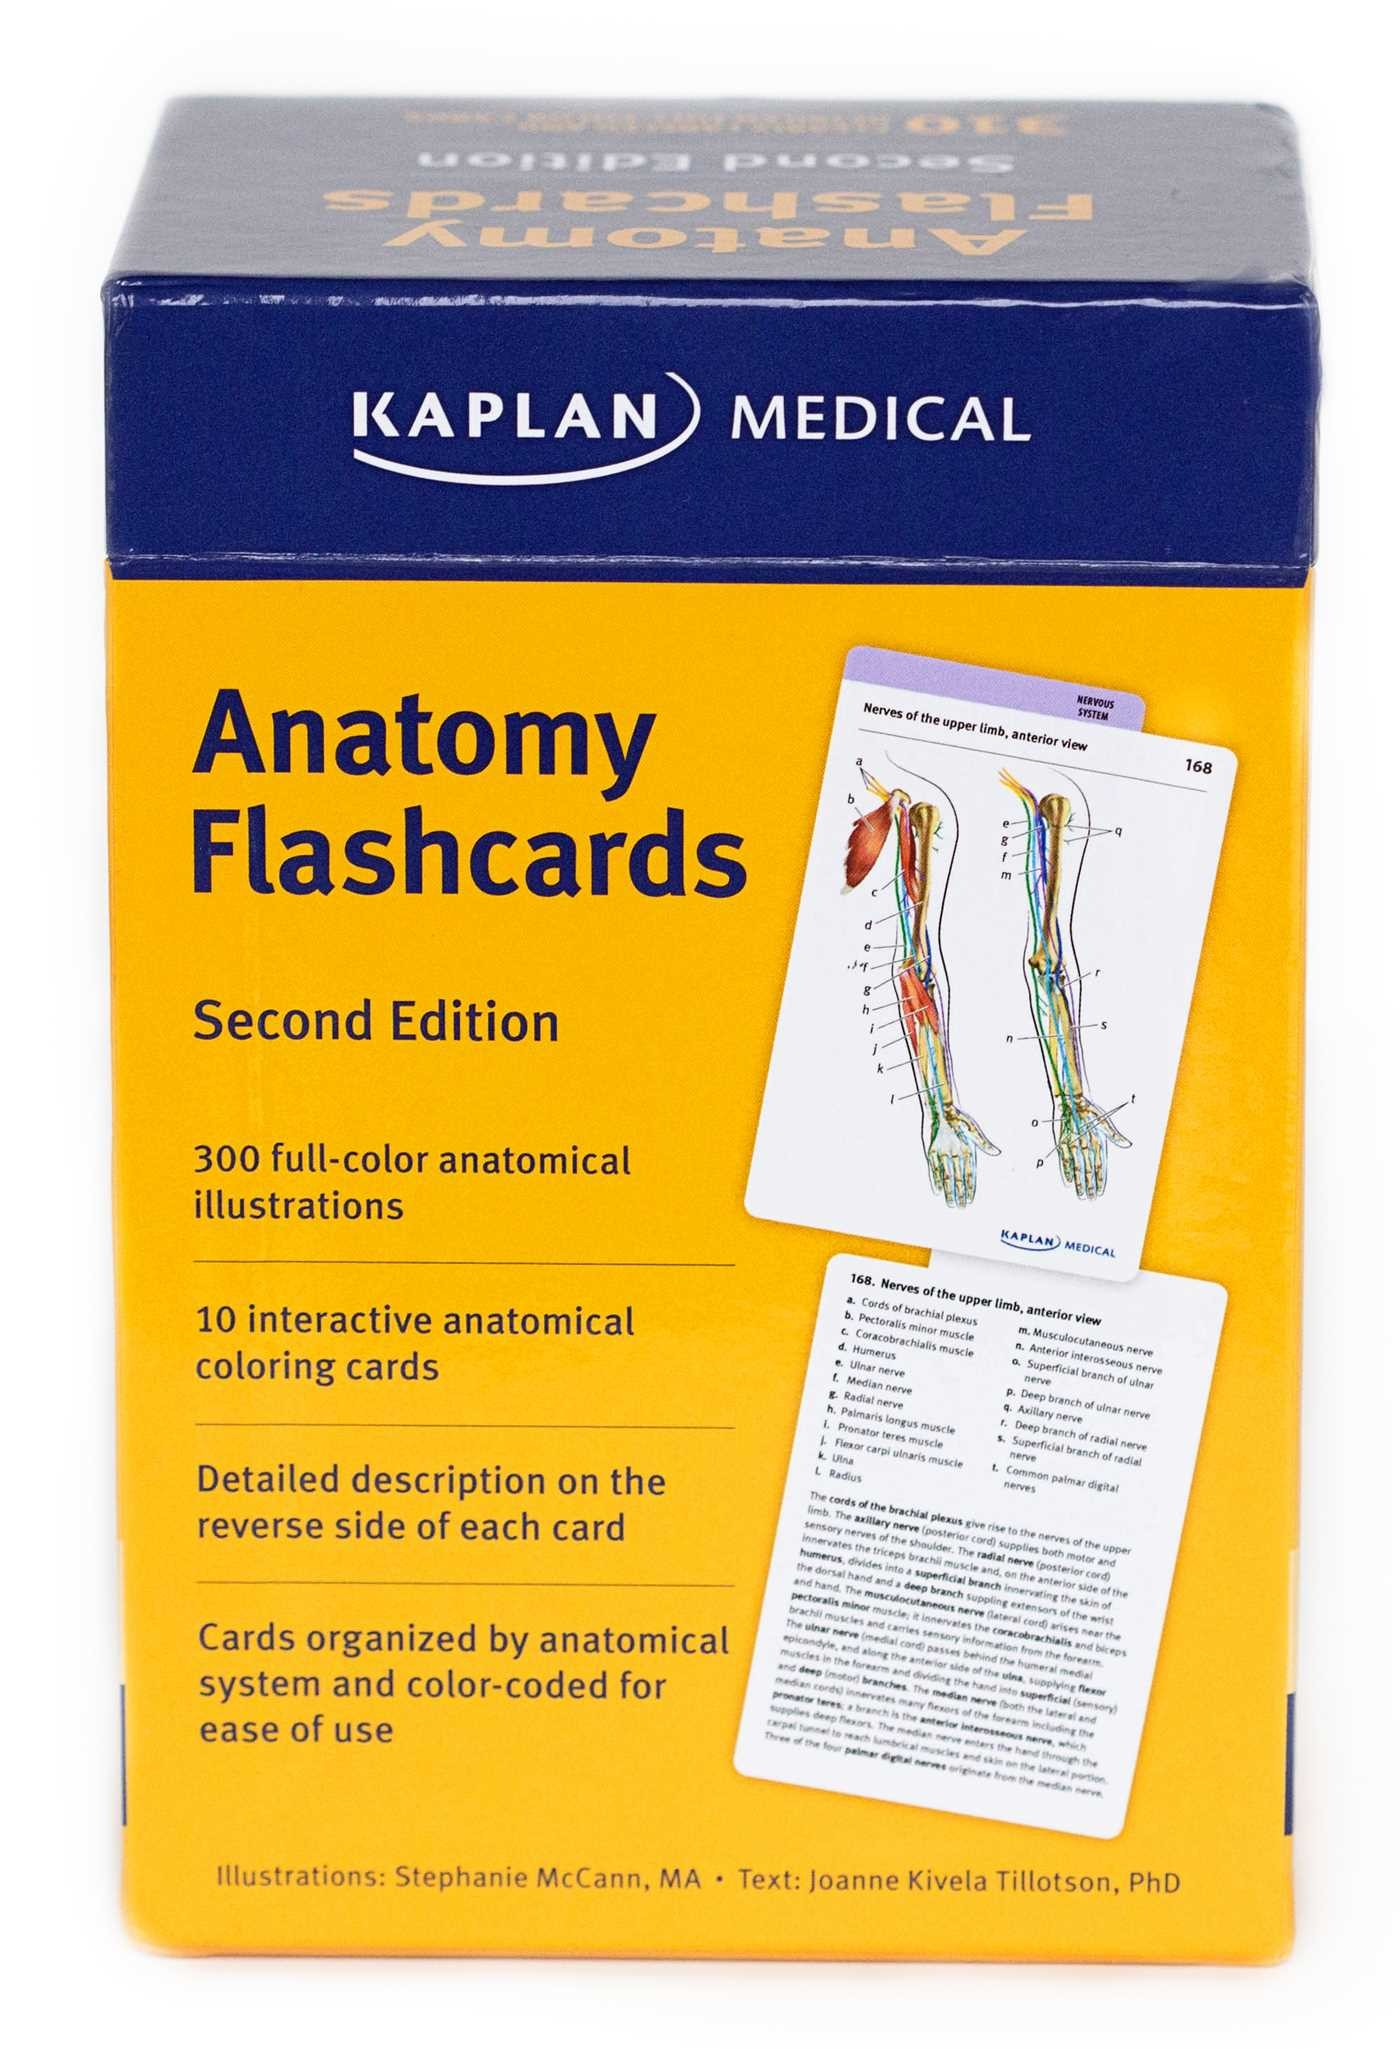 Anatomy-flashcards-9781607149842.in02